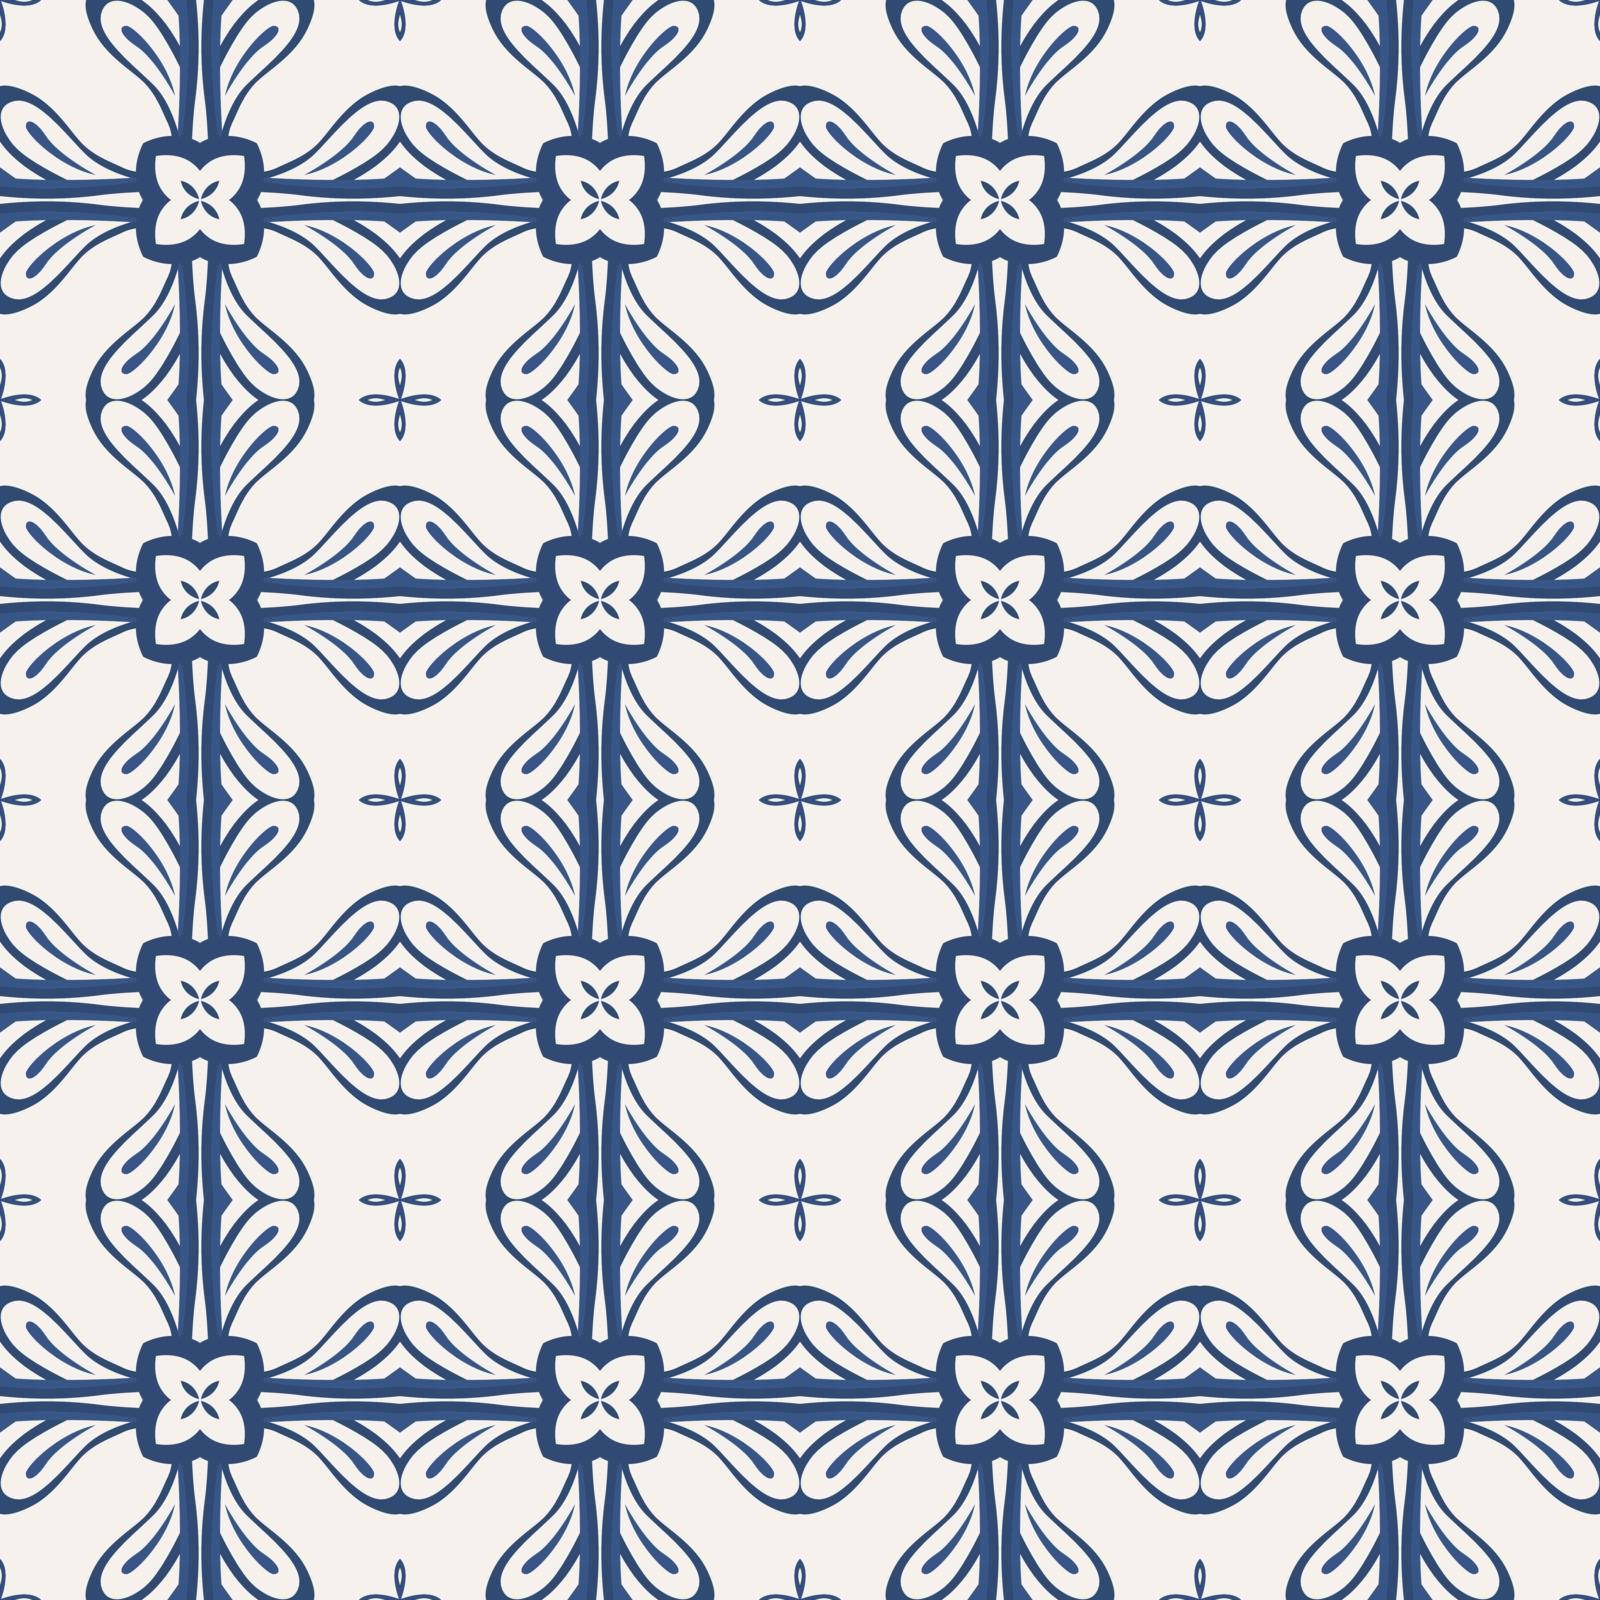 Seamless illustrated pattern made of abstract elements in light beige and shades of blue